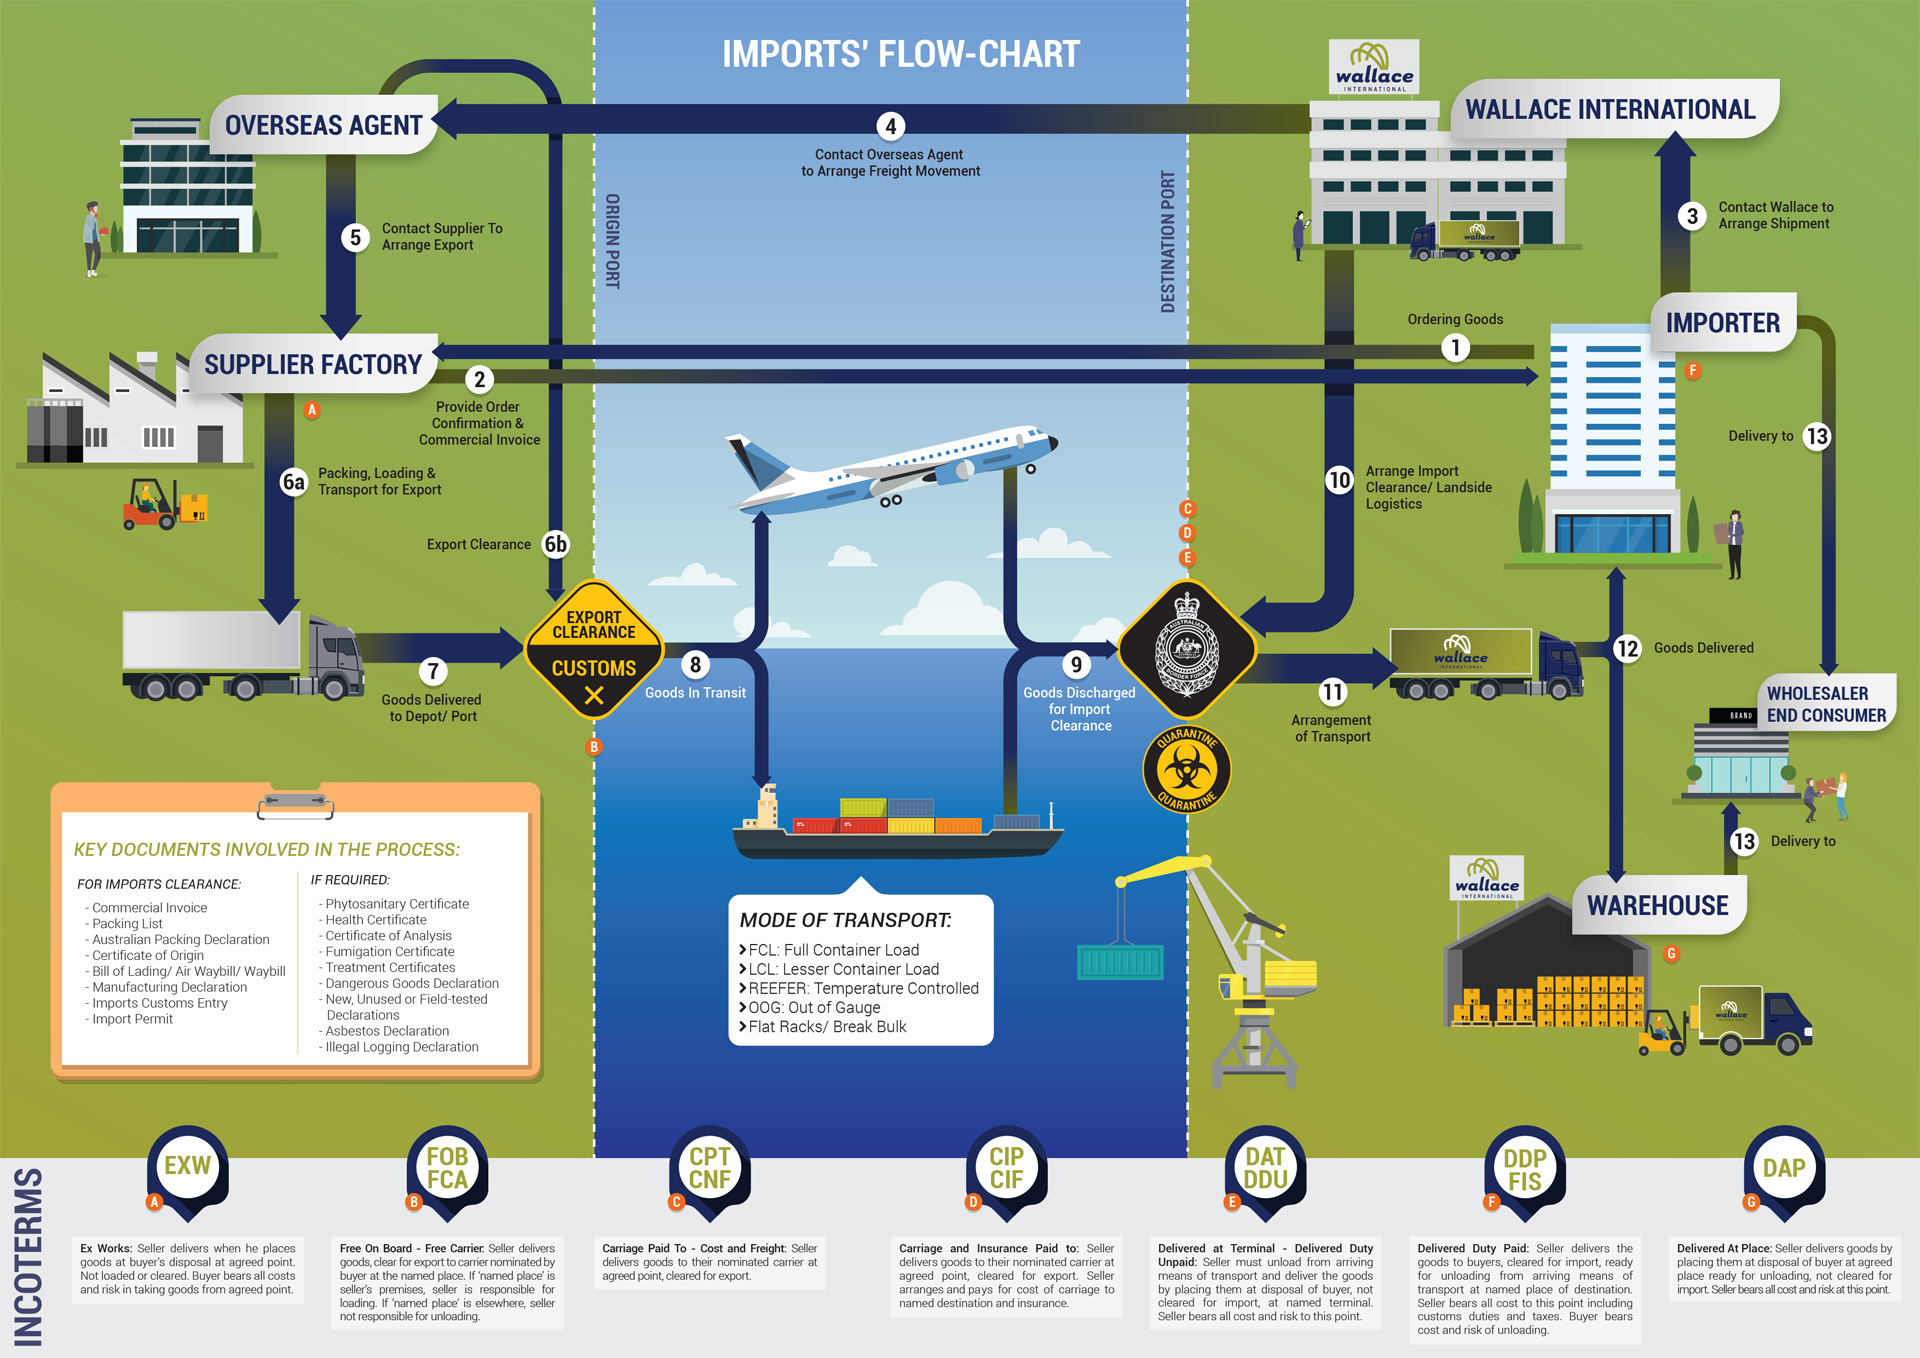 Importing Process Infographic Wallace International